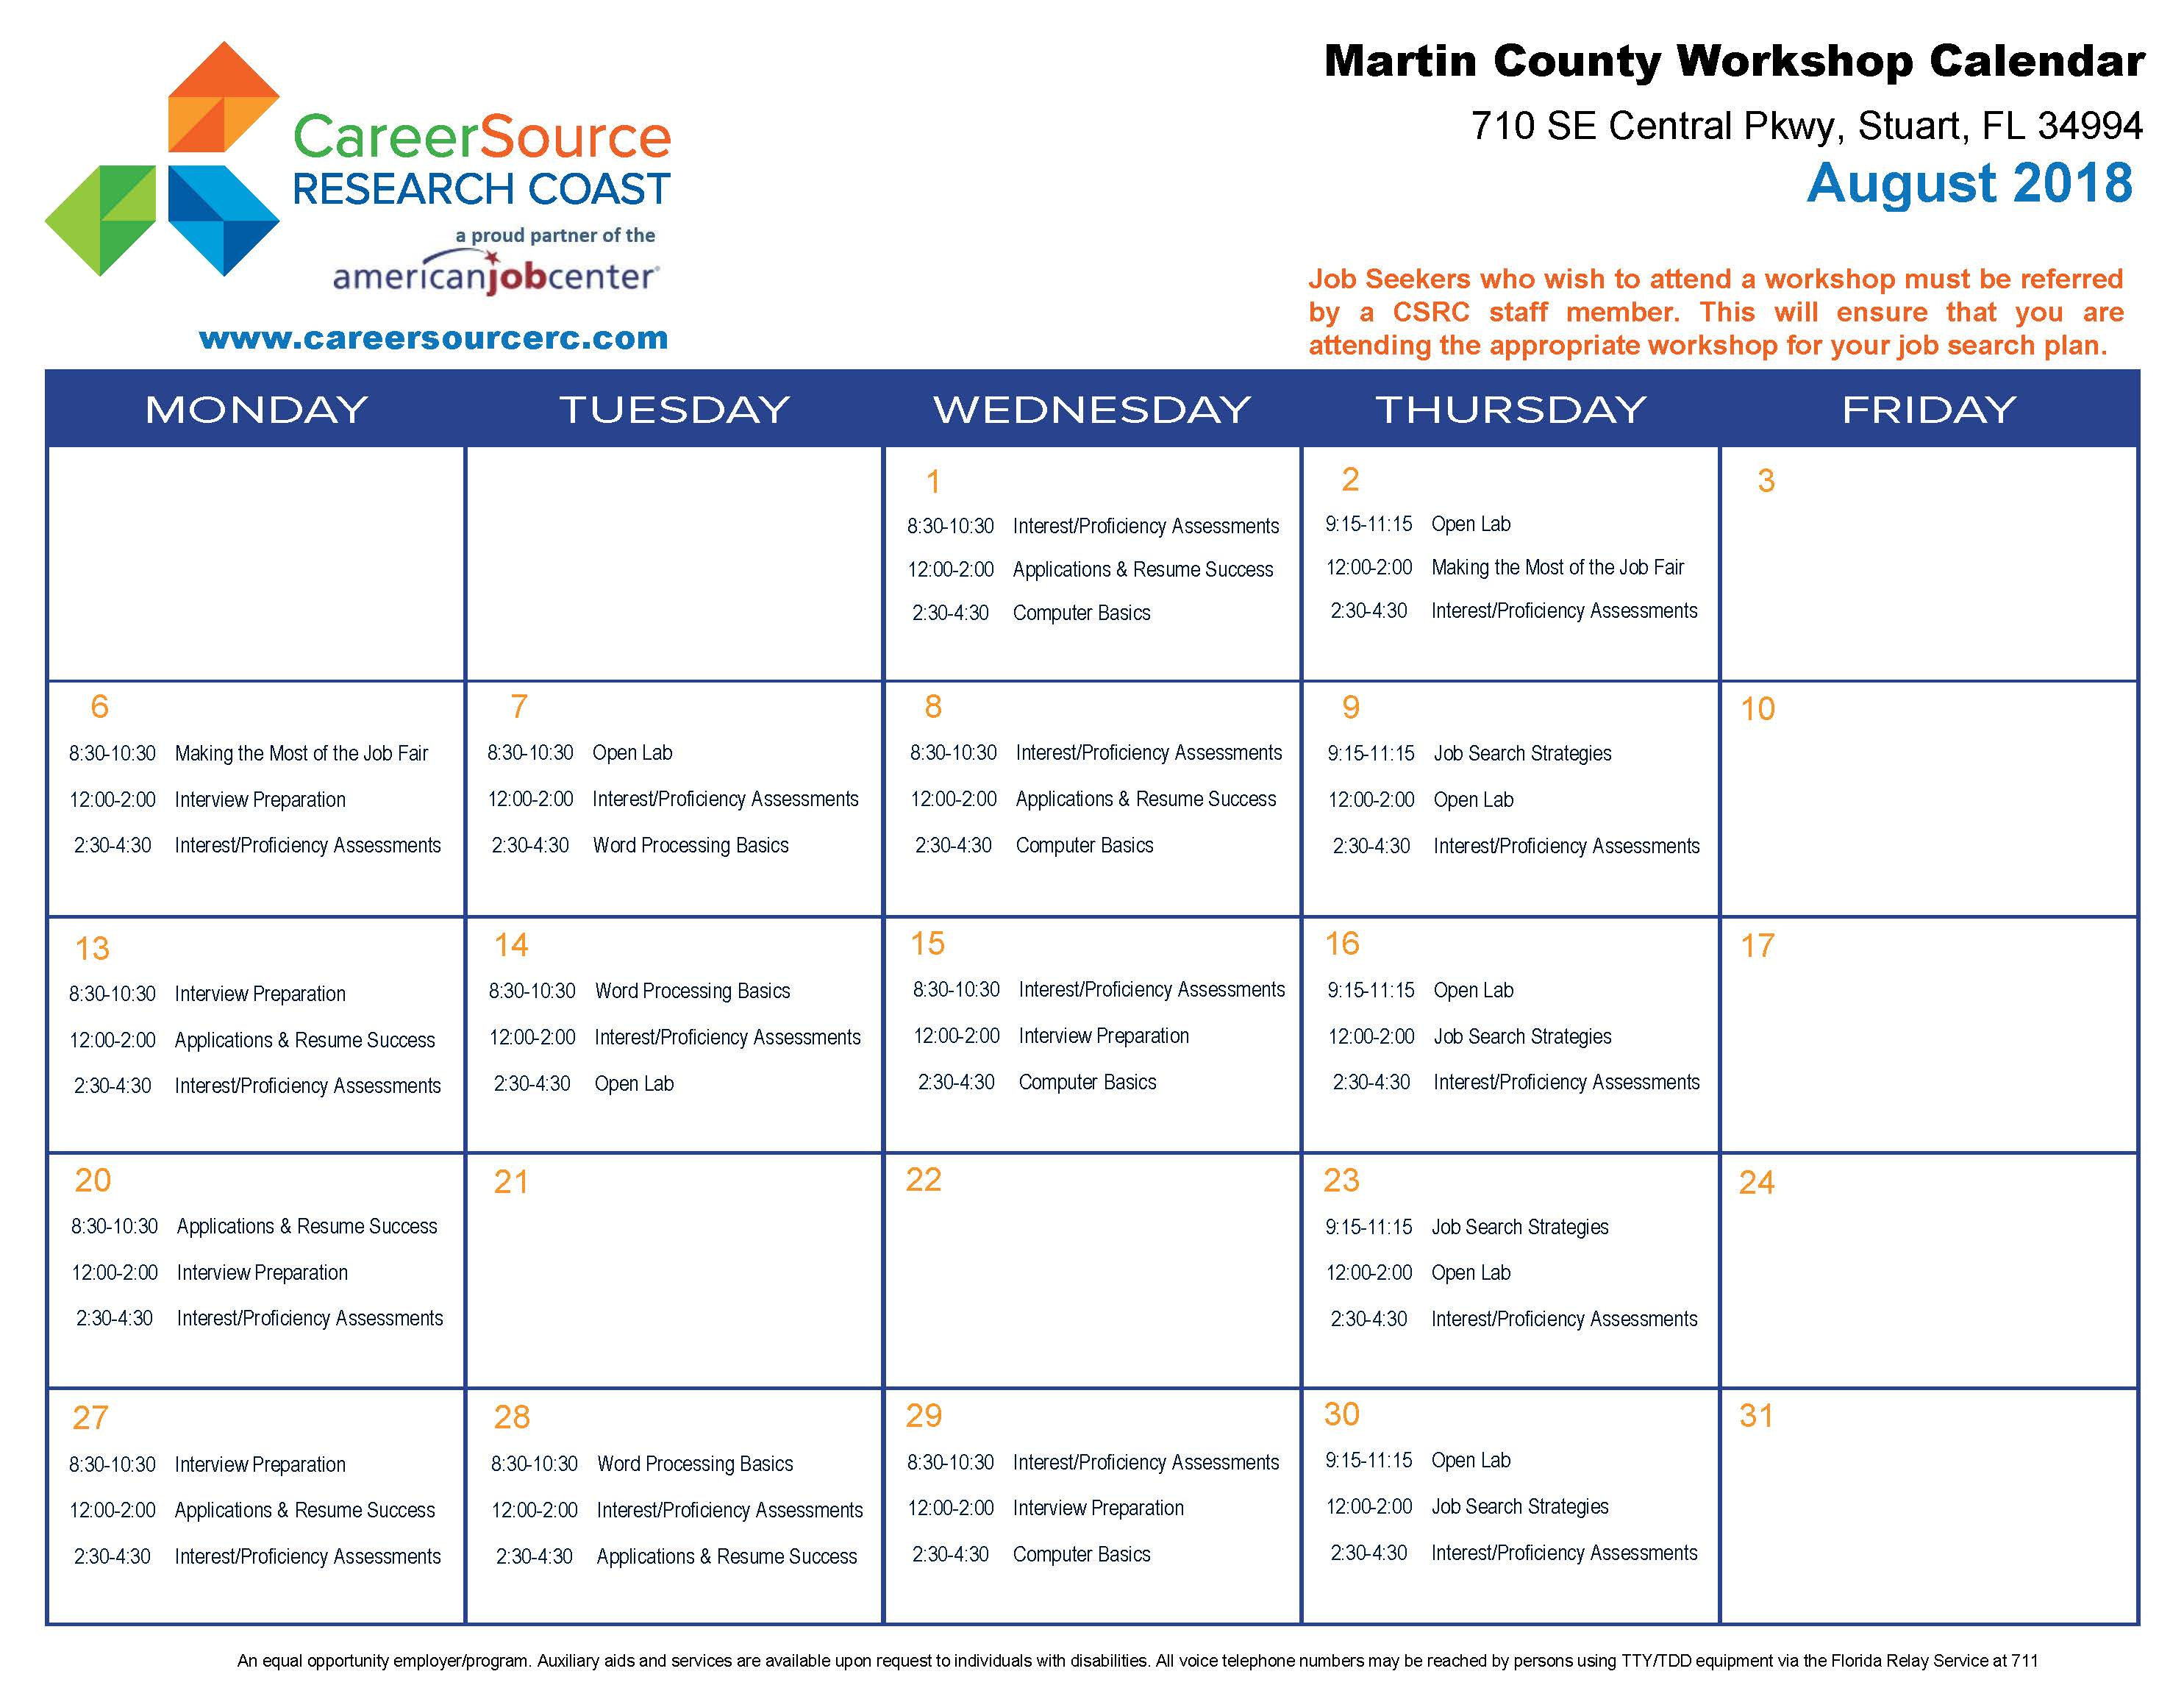 Employment Success Workshops - CareerSource Research Coast